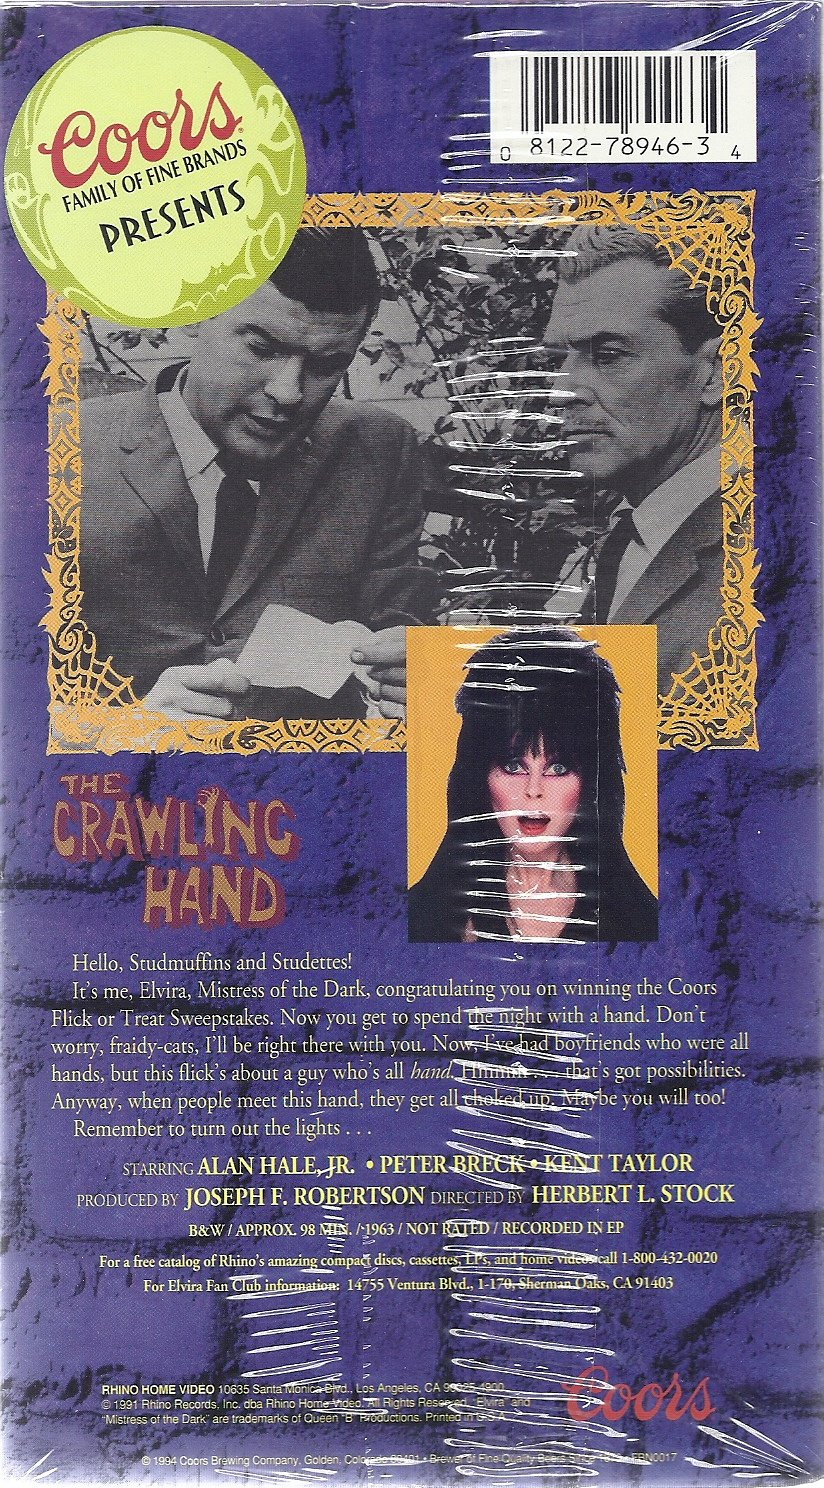 The Crawling Hand Elvira Mistress Of Dark Jr Possessedhand Will Move Your For You Alan Hale Peter Breck Kent Taylor Joseph F Robertson Movies Tv